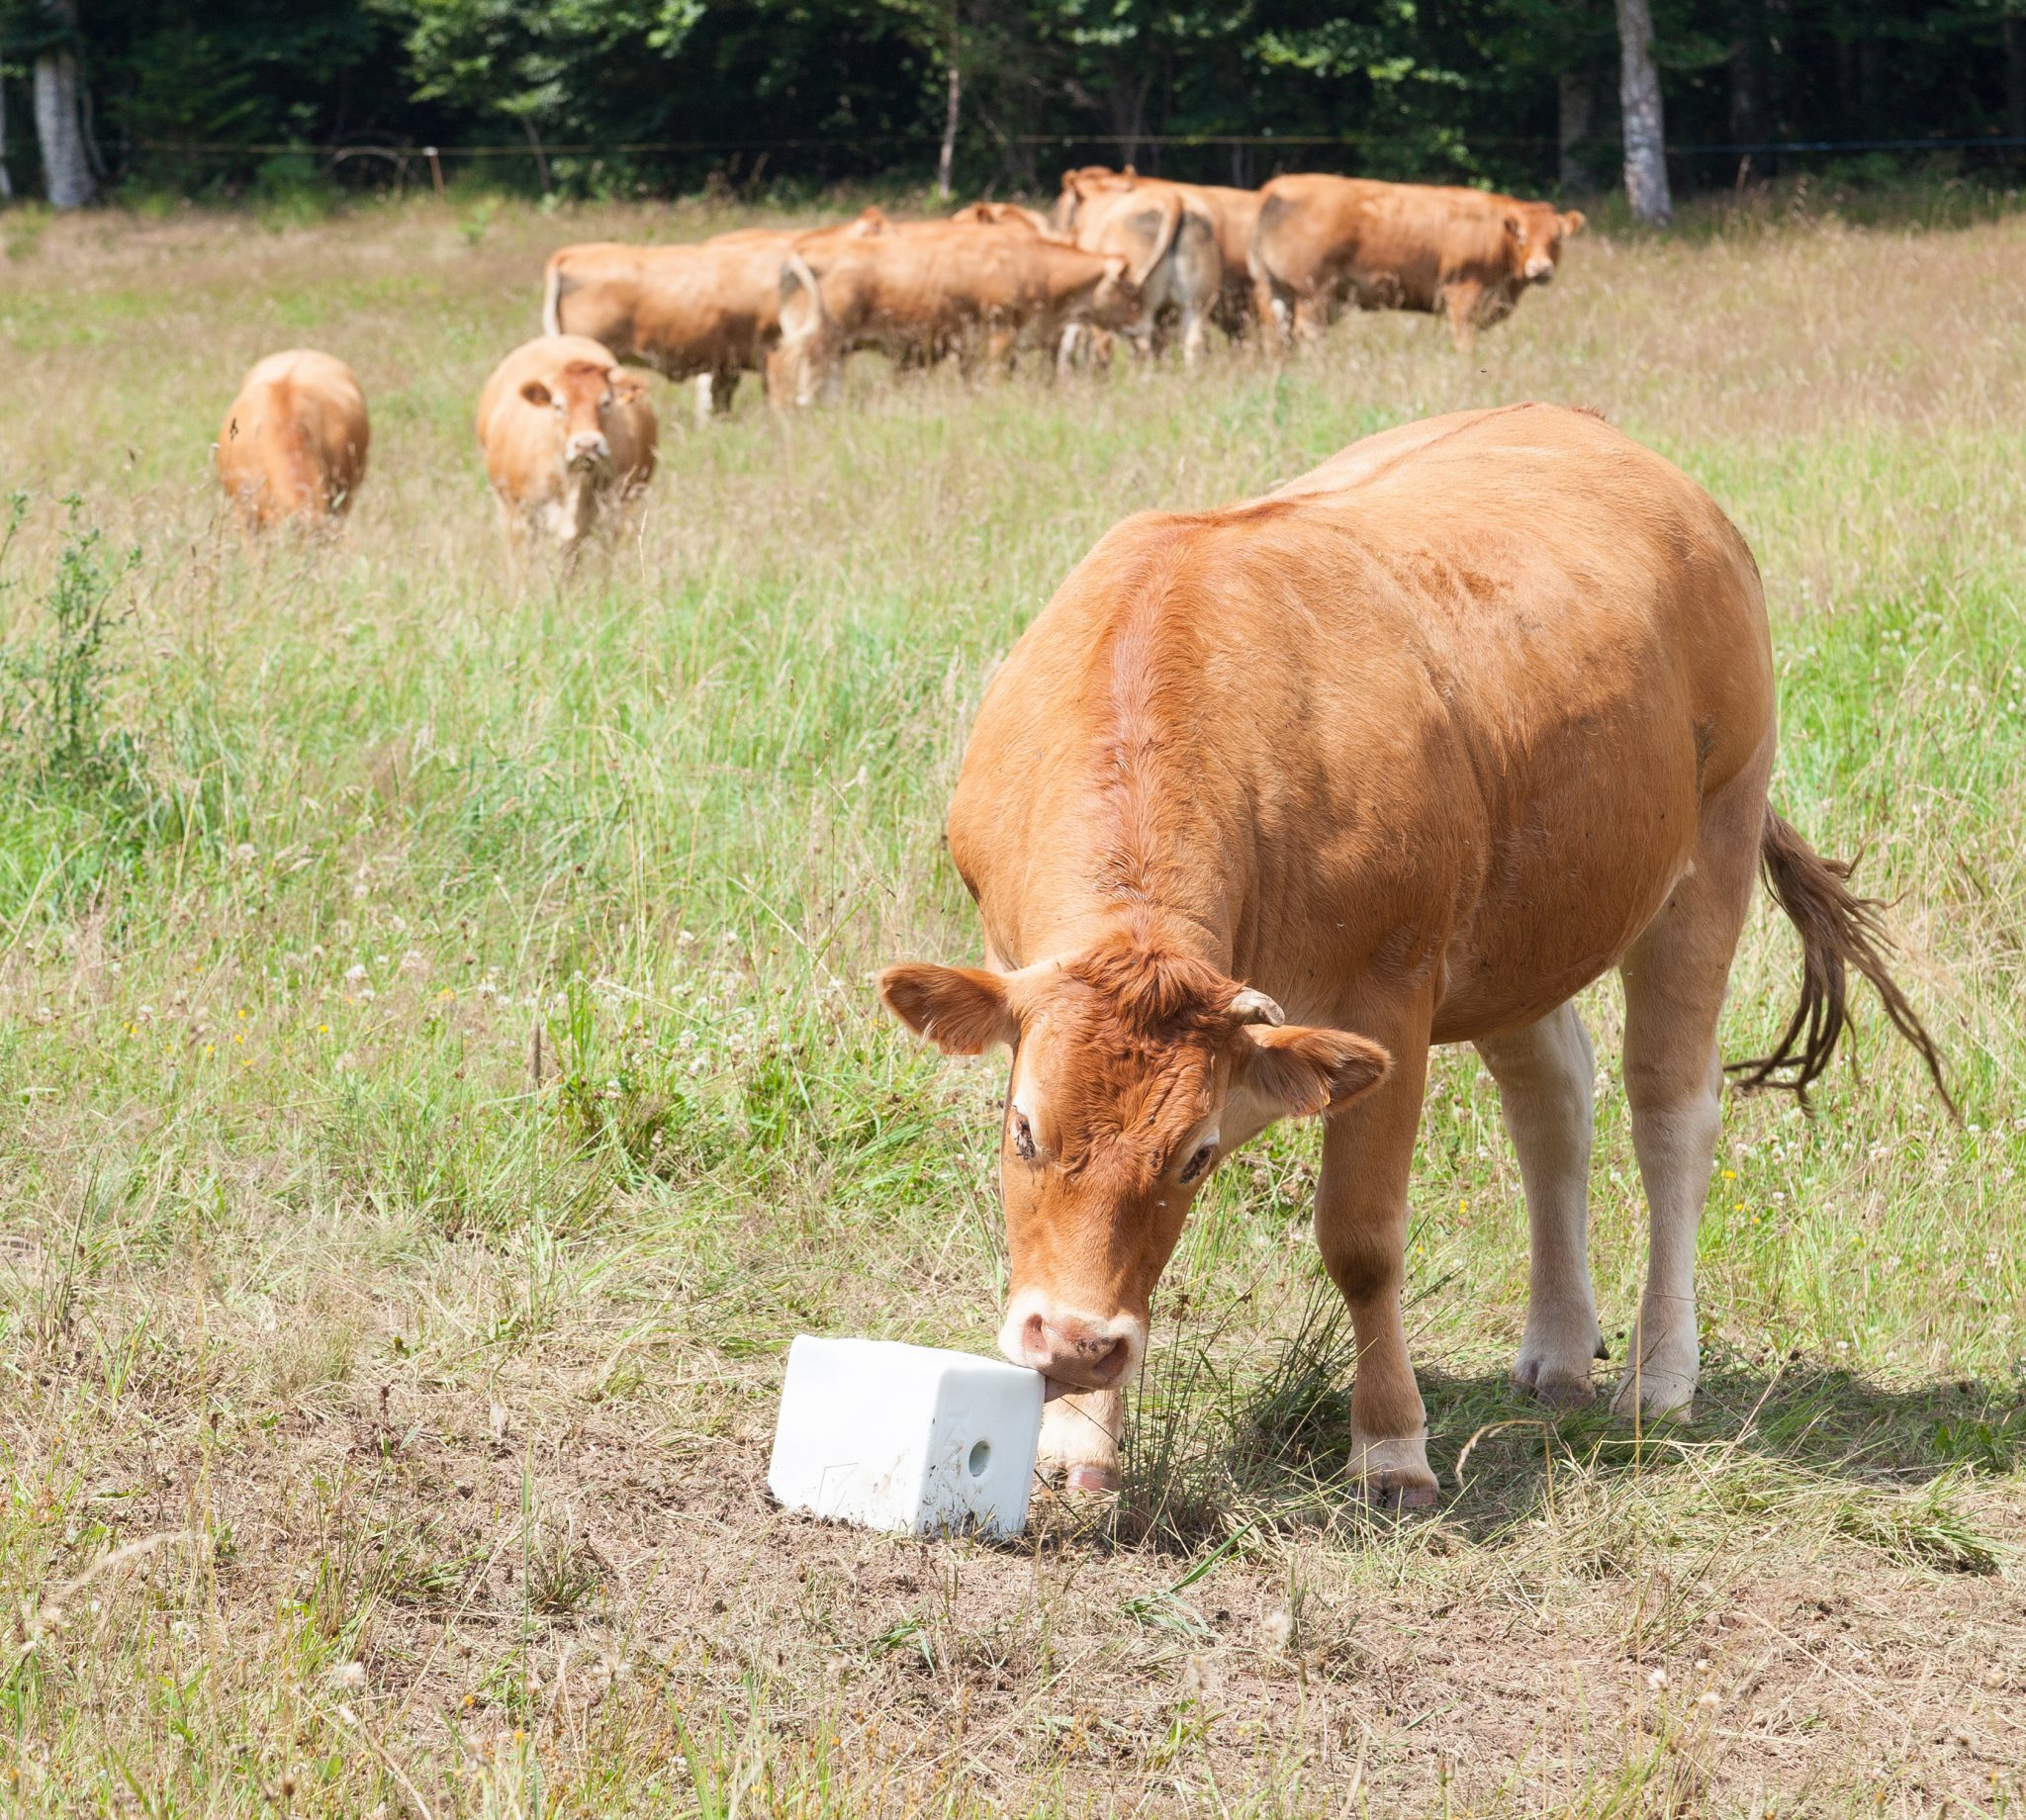 Cow eating a new cube of salt lick mineral supplement